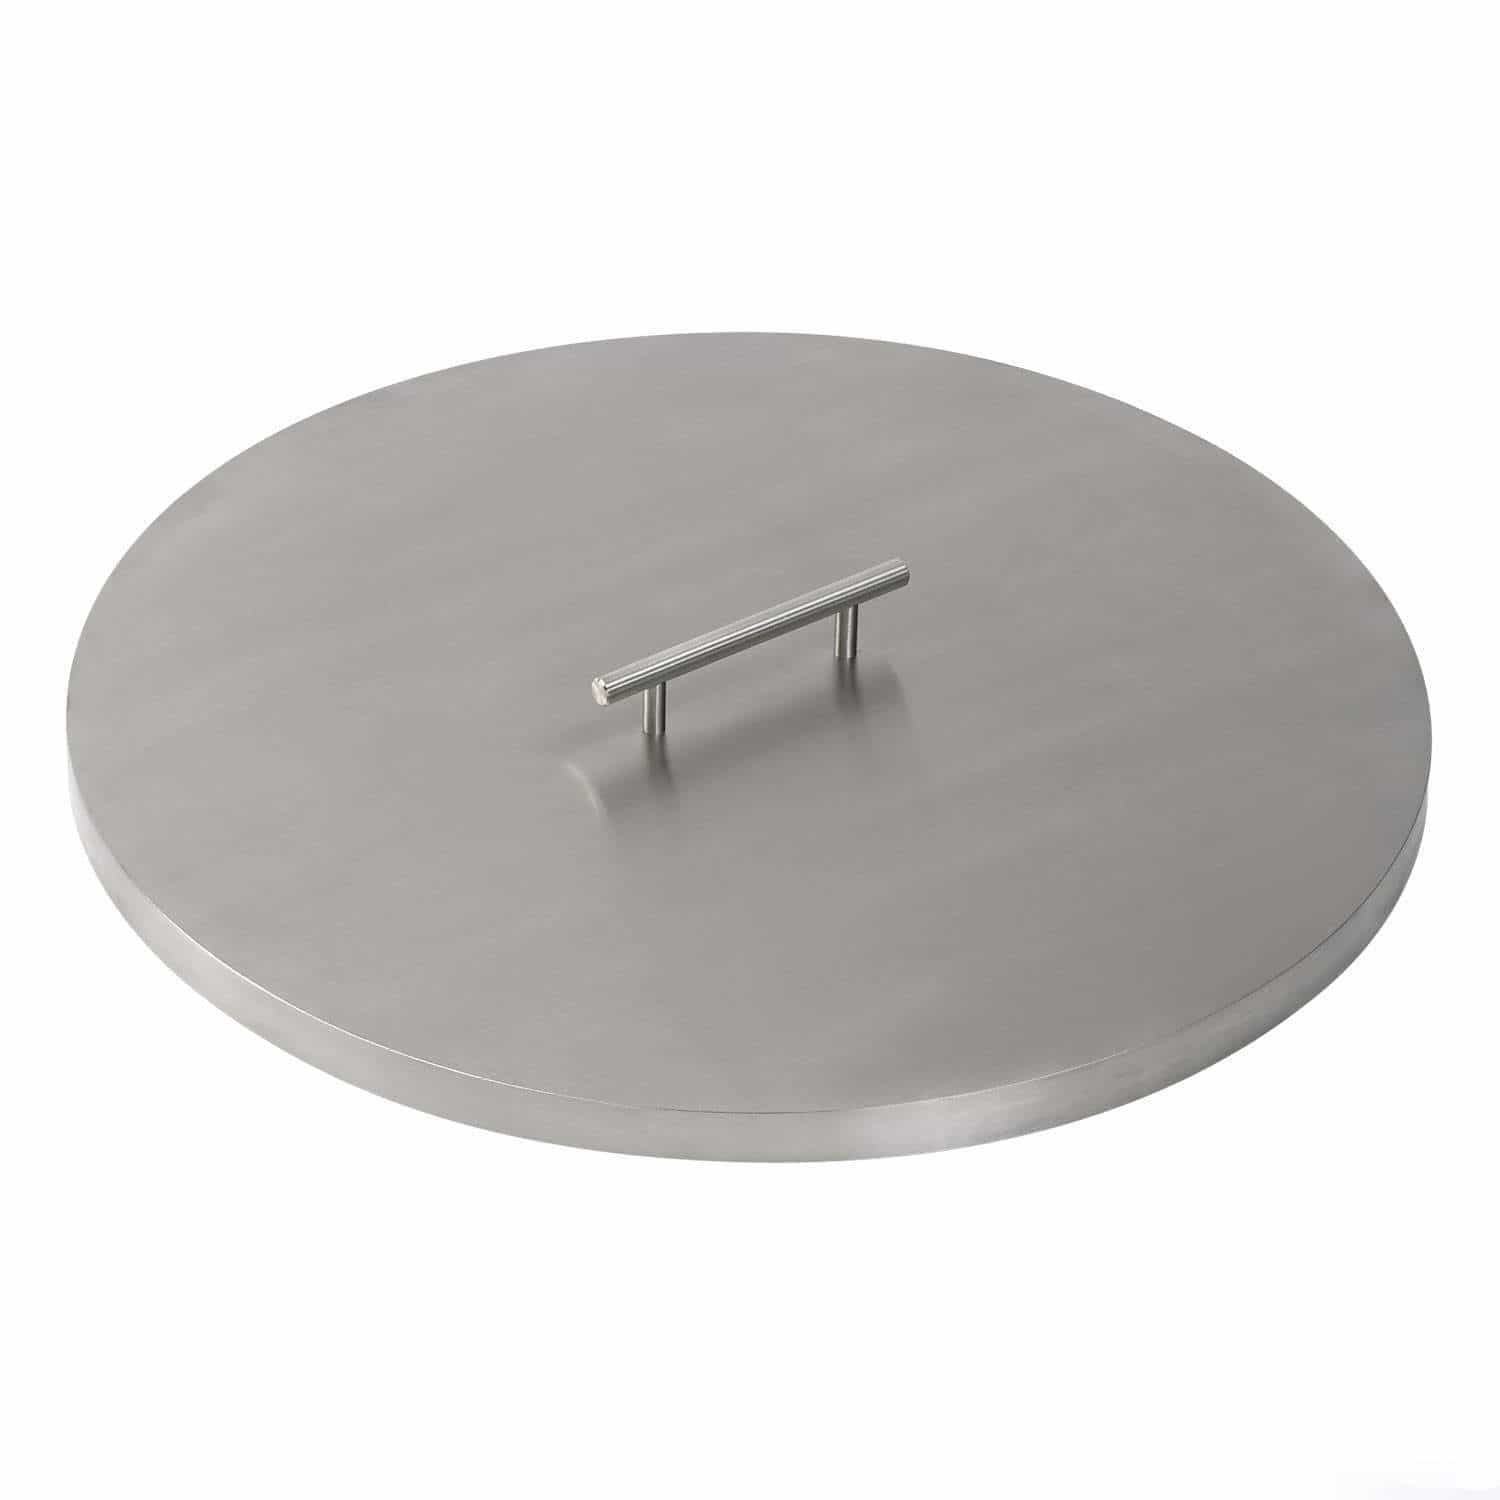 Round Fire Pit Pan Cover Stainless Steel Ams Fireplace Inc with regard to size 1500 X 1500